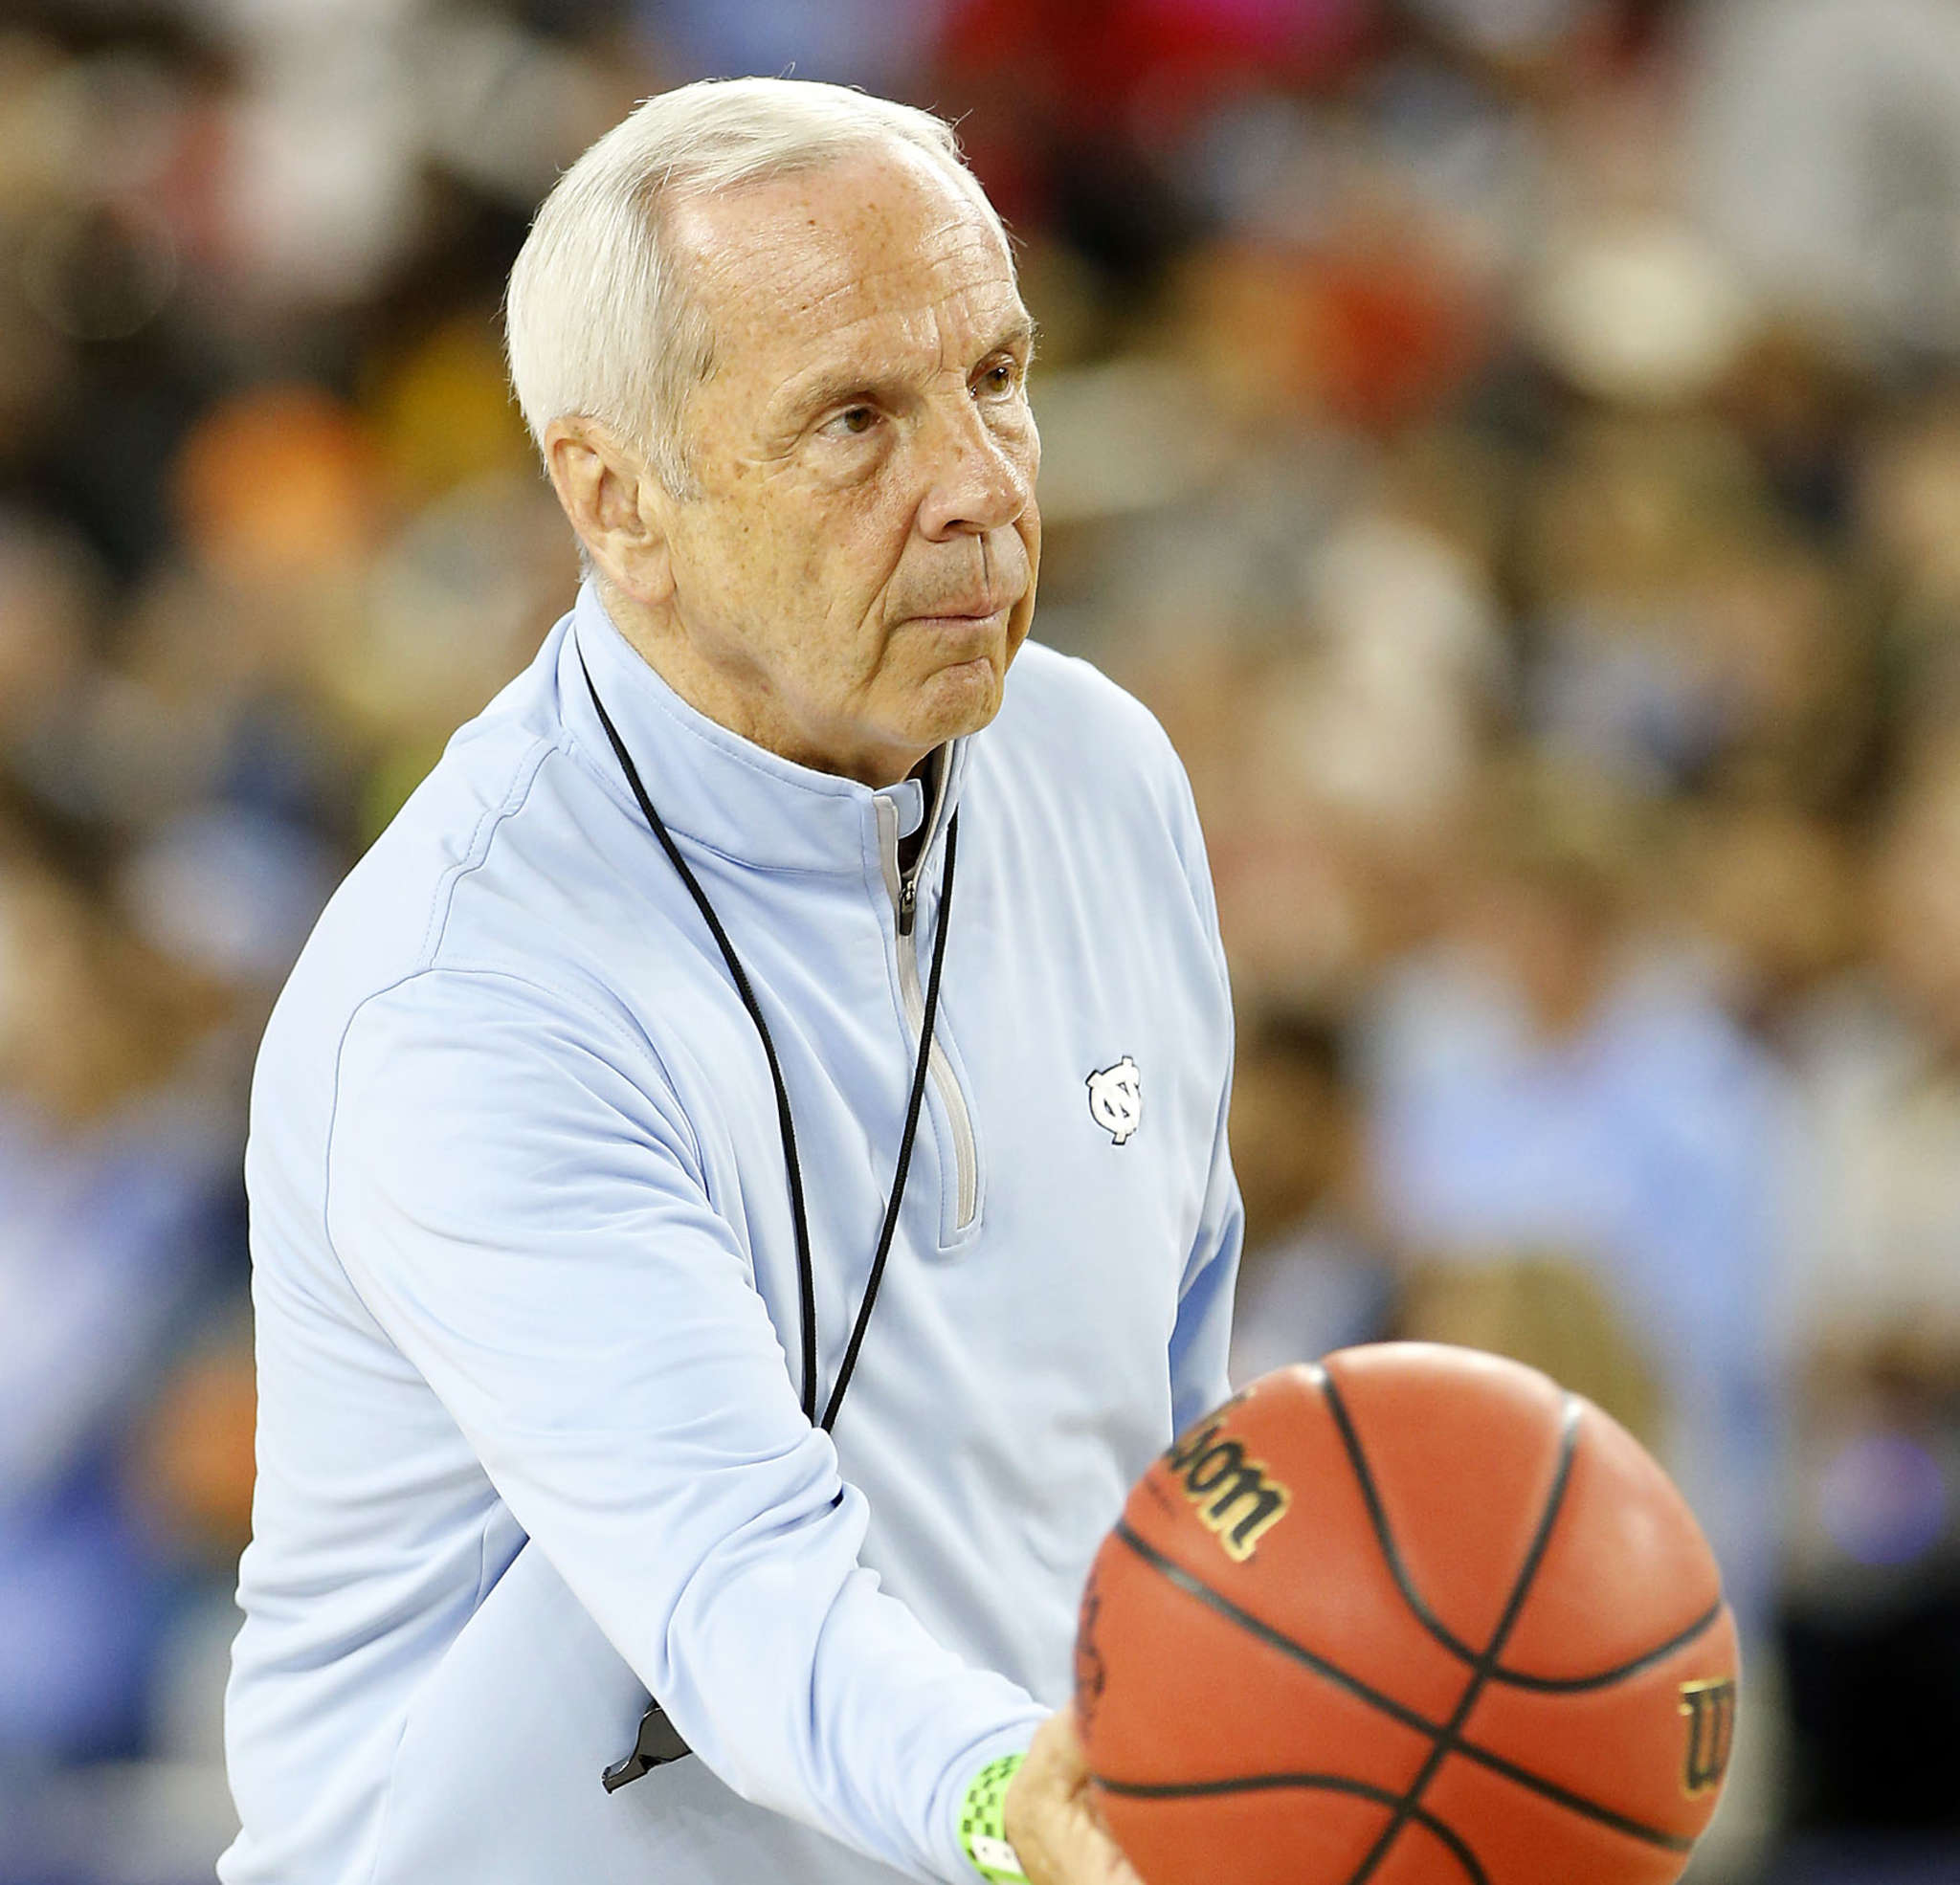 North Carolina coach Roy Williams leads the Tar Heels into the Final Four while UNC is under investigation for academic fraud.